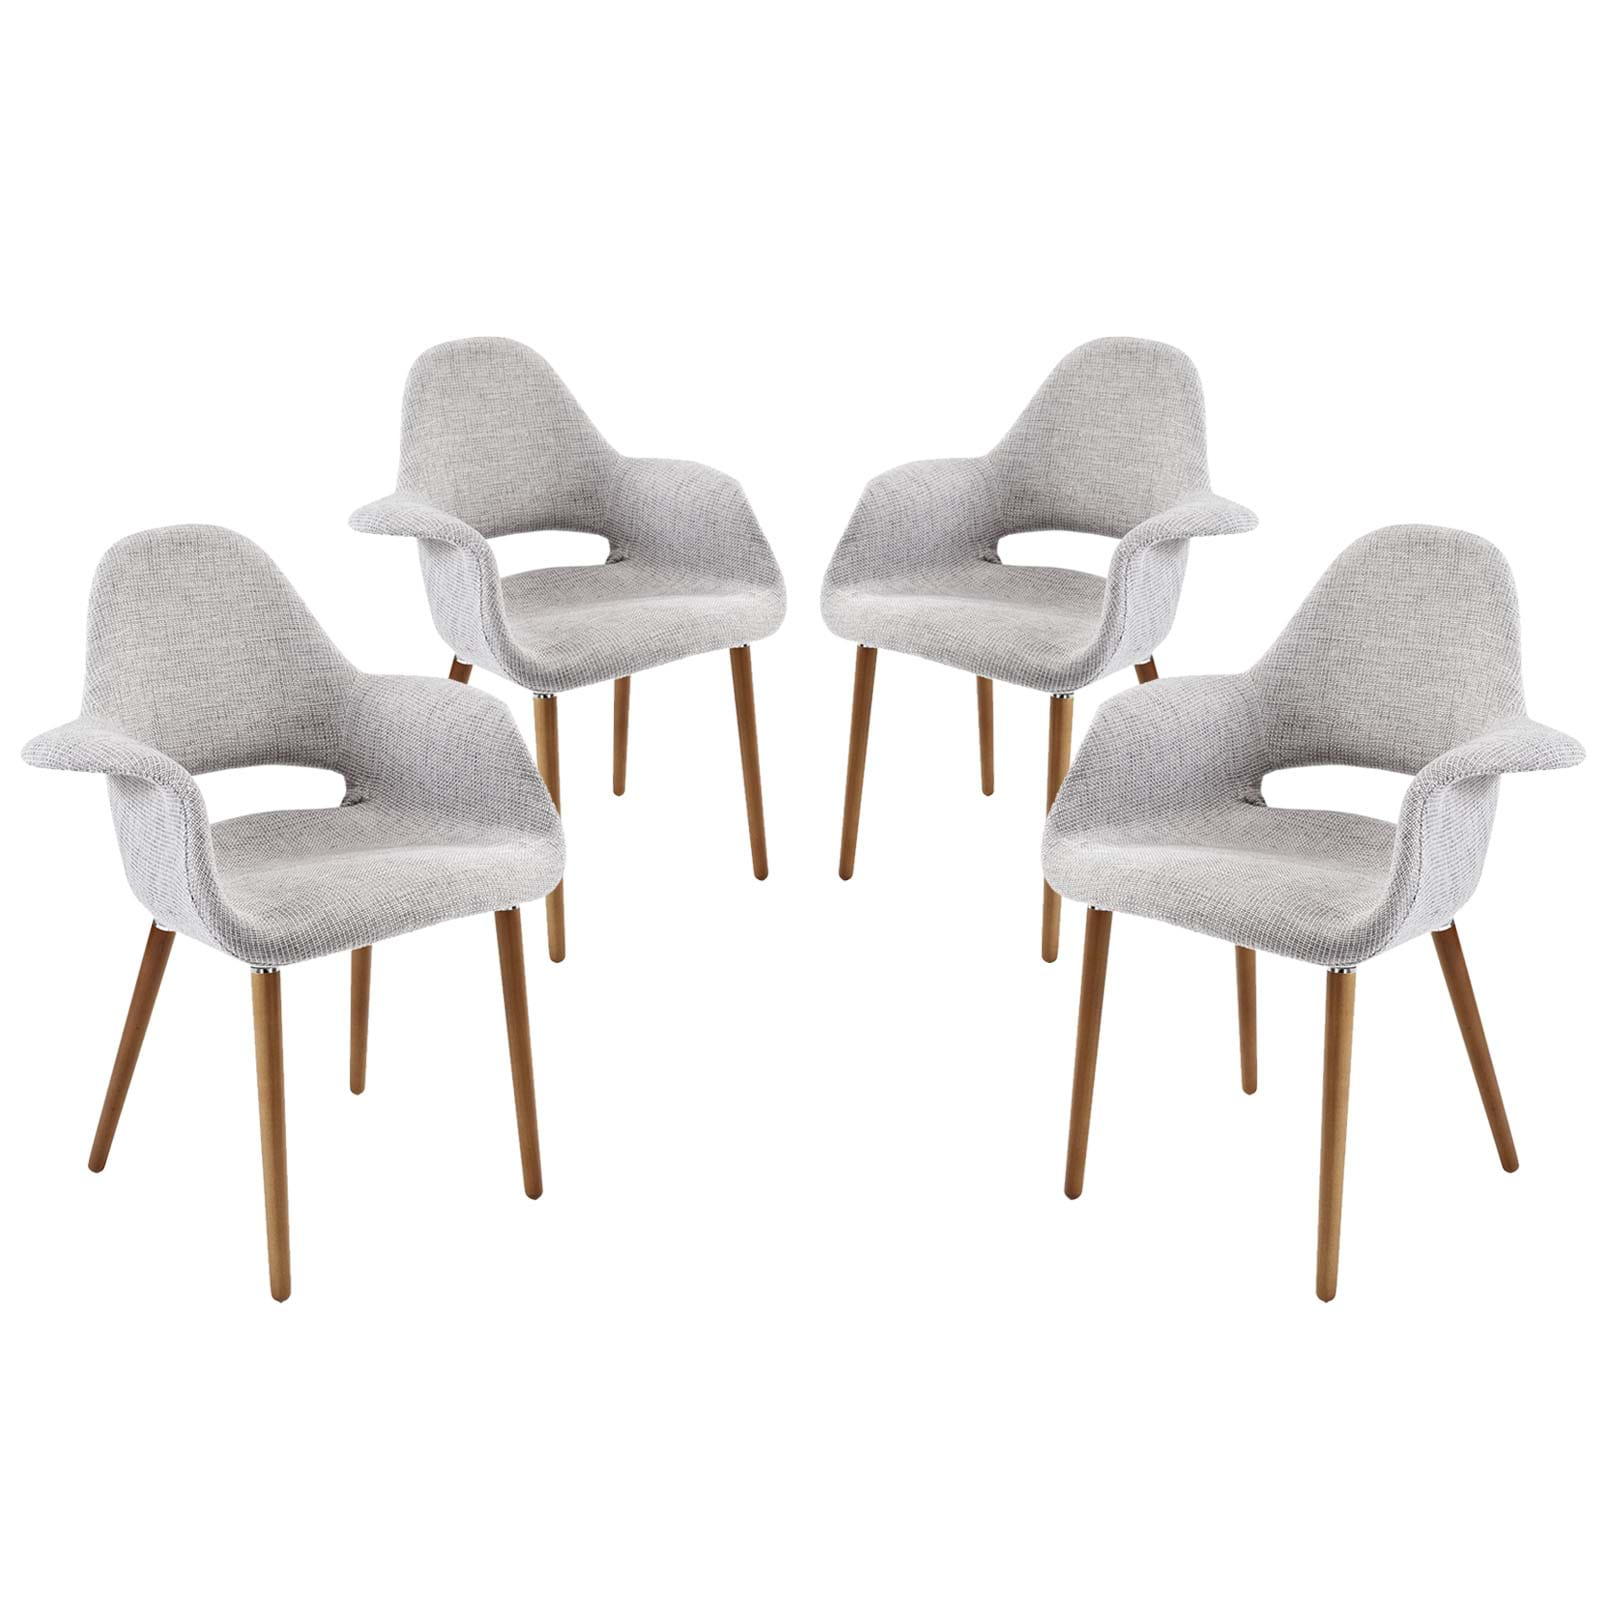 Aegis Dining Armchair Set of 4